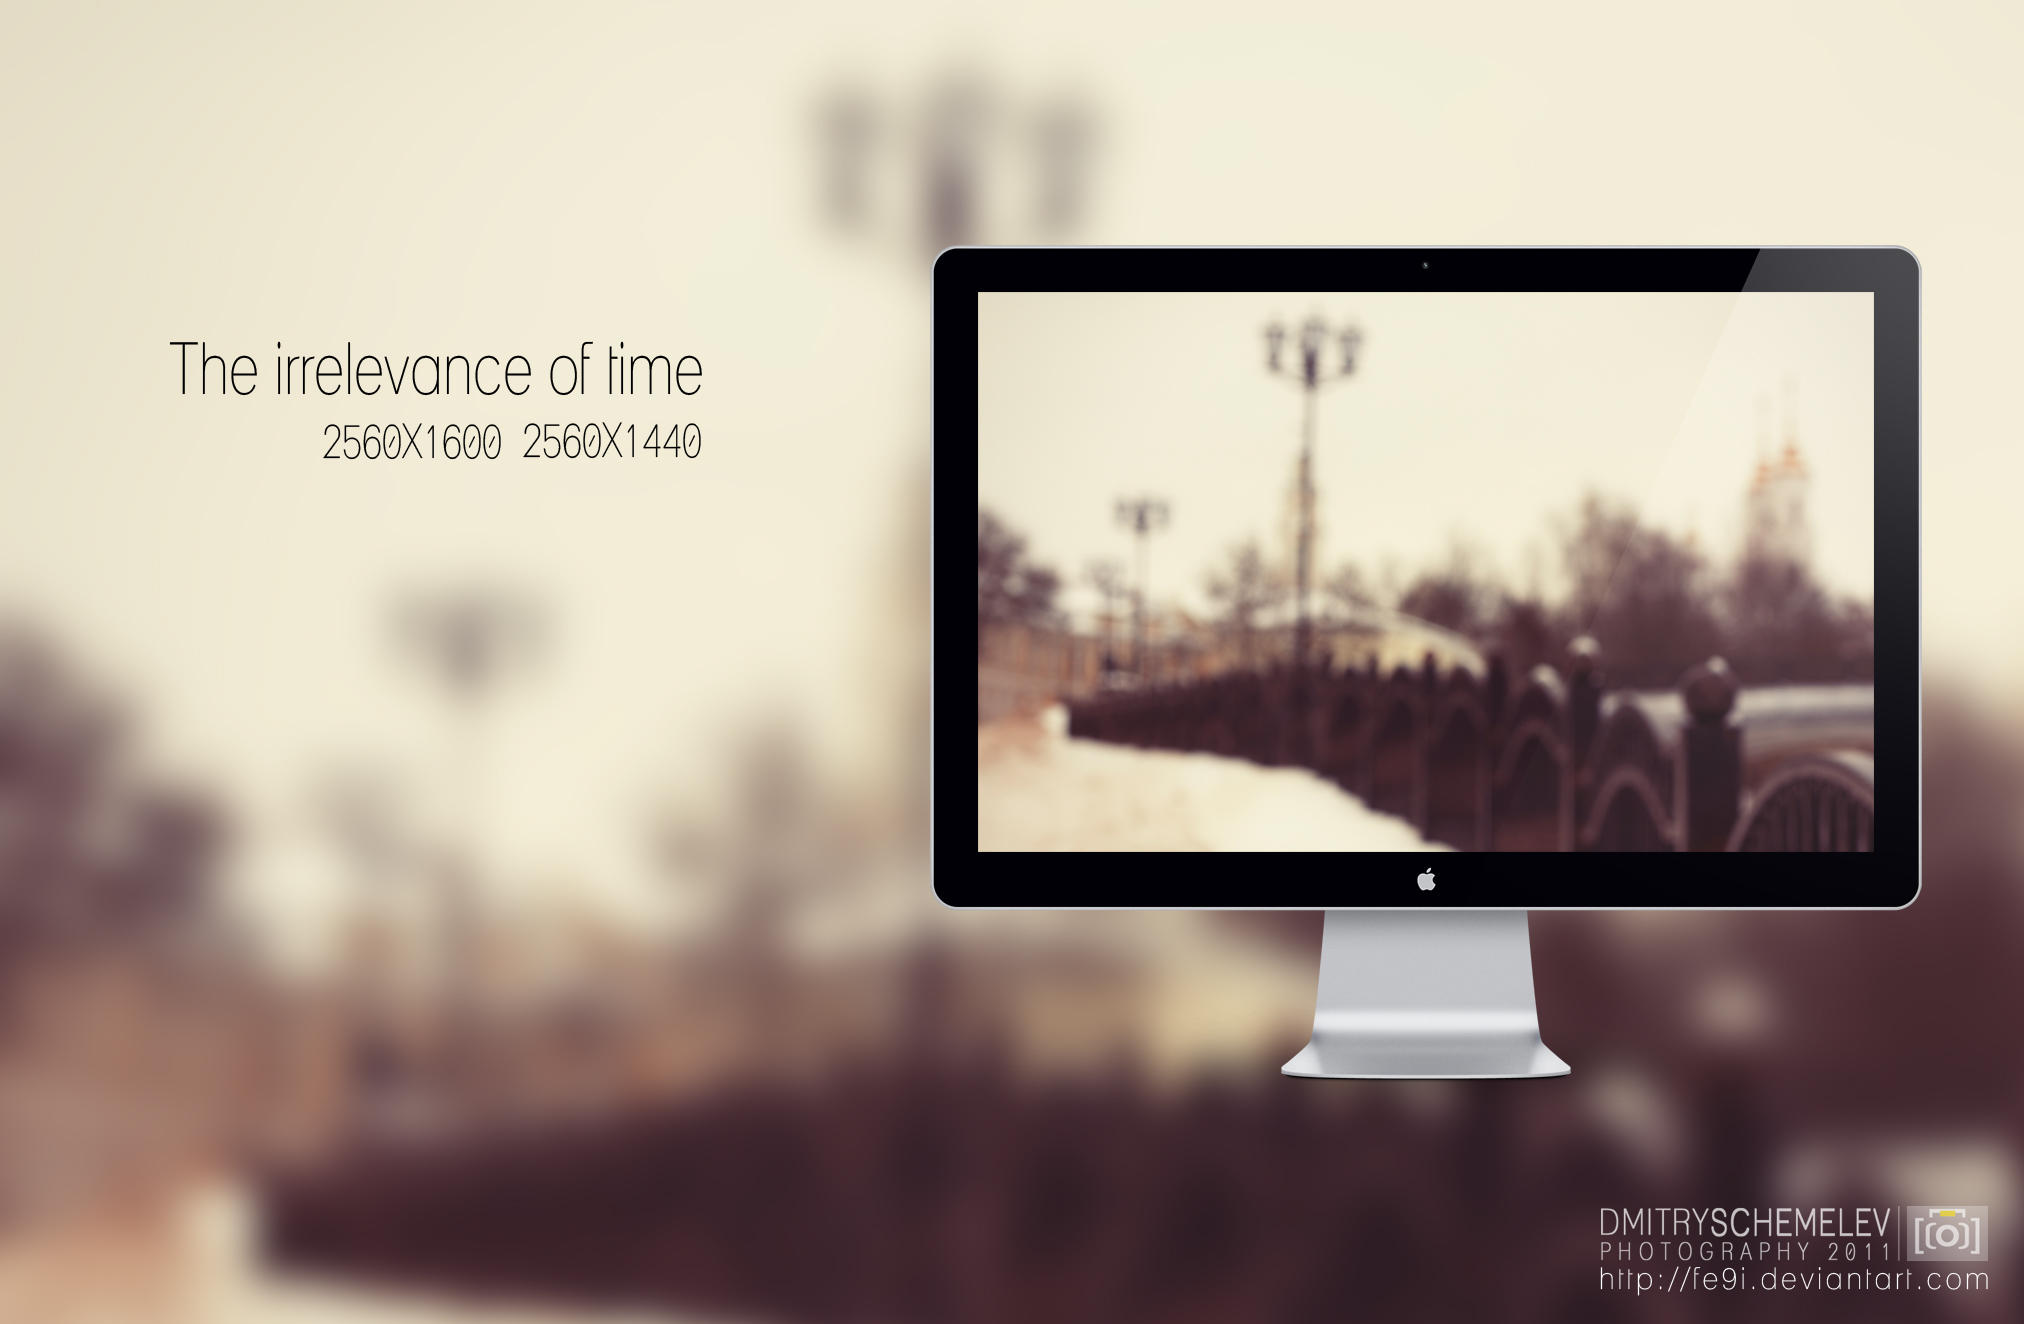 The irrelevance of time by enioku